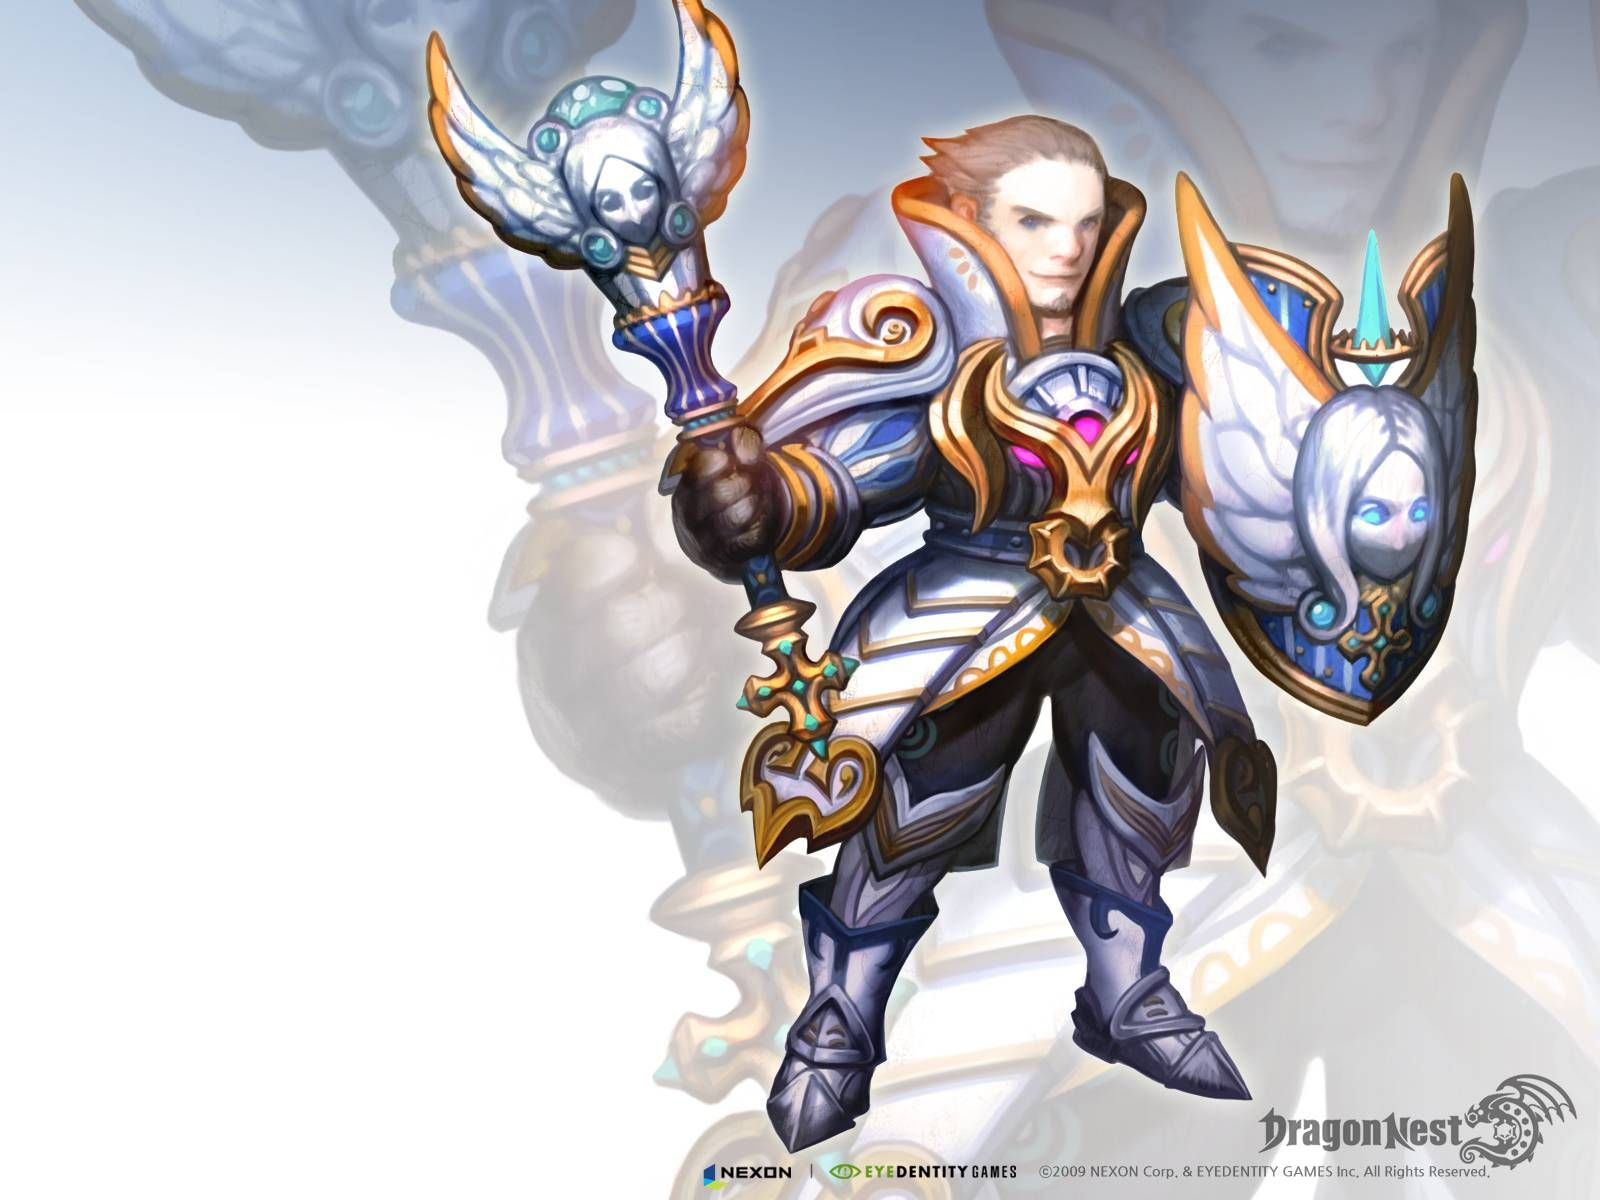 Dragon Nest Europe Freetoplay Online Action Rpg 1280 800 Dragon Nest Wallpaper 57 Wallpapers Adorable Wallpapers Dragon Nest Dragon Wallpaper